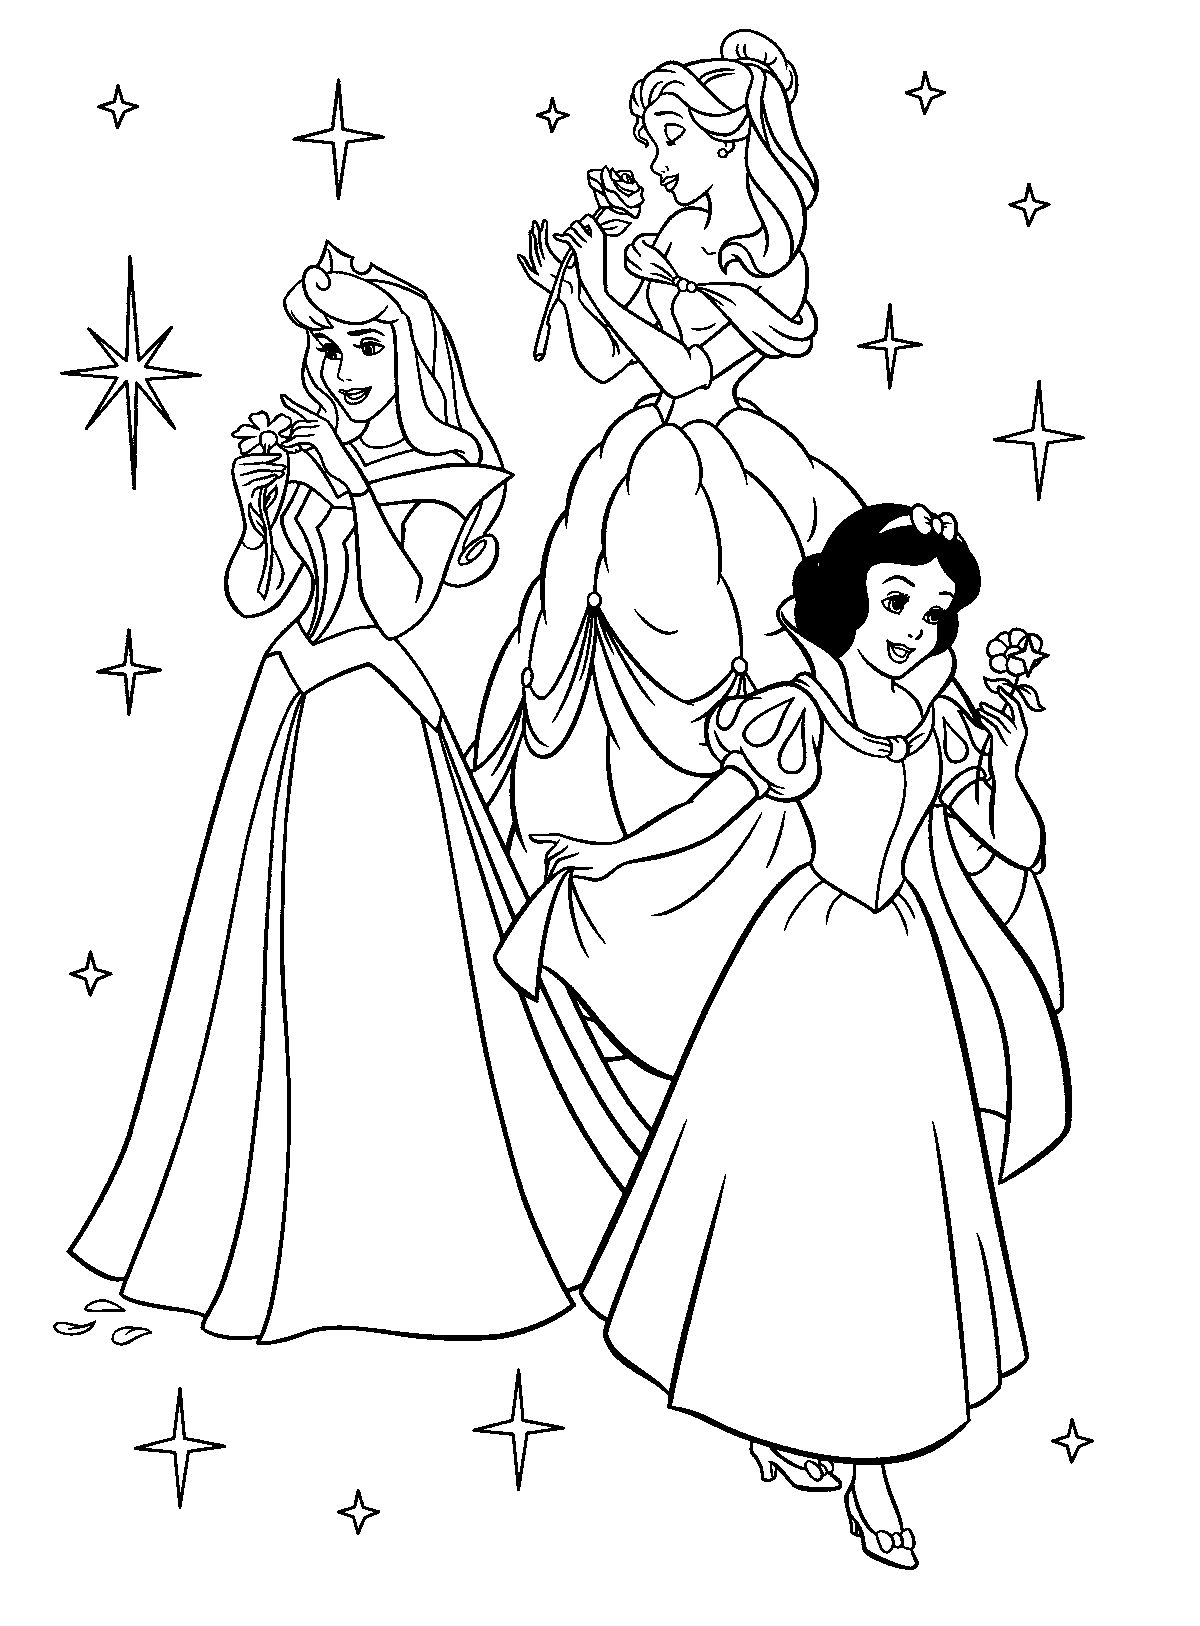 photograph regarding Free Printable Disney Princess Coloring Pages known as Absolutely free Printable Disney Princess Coloring Internet pages For Children